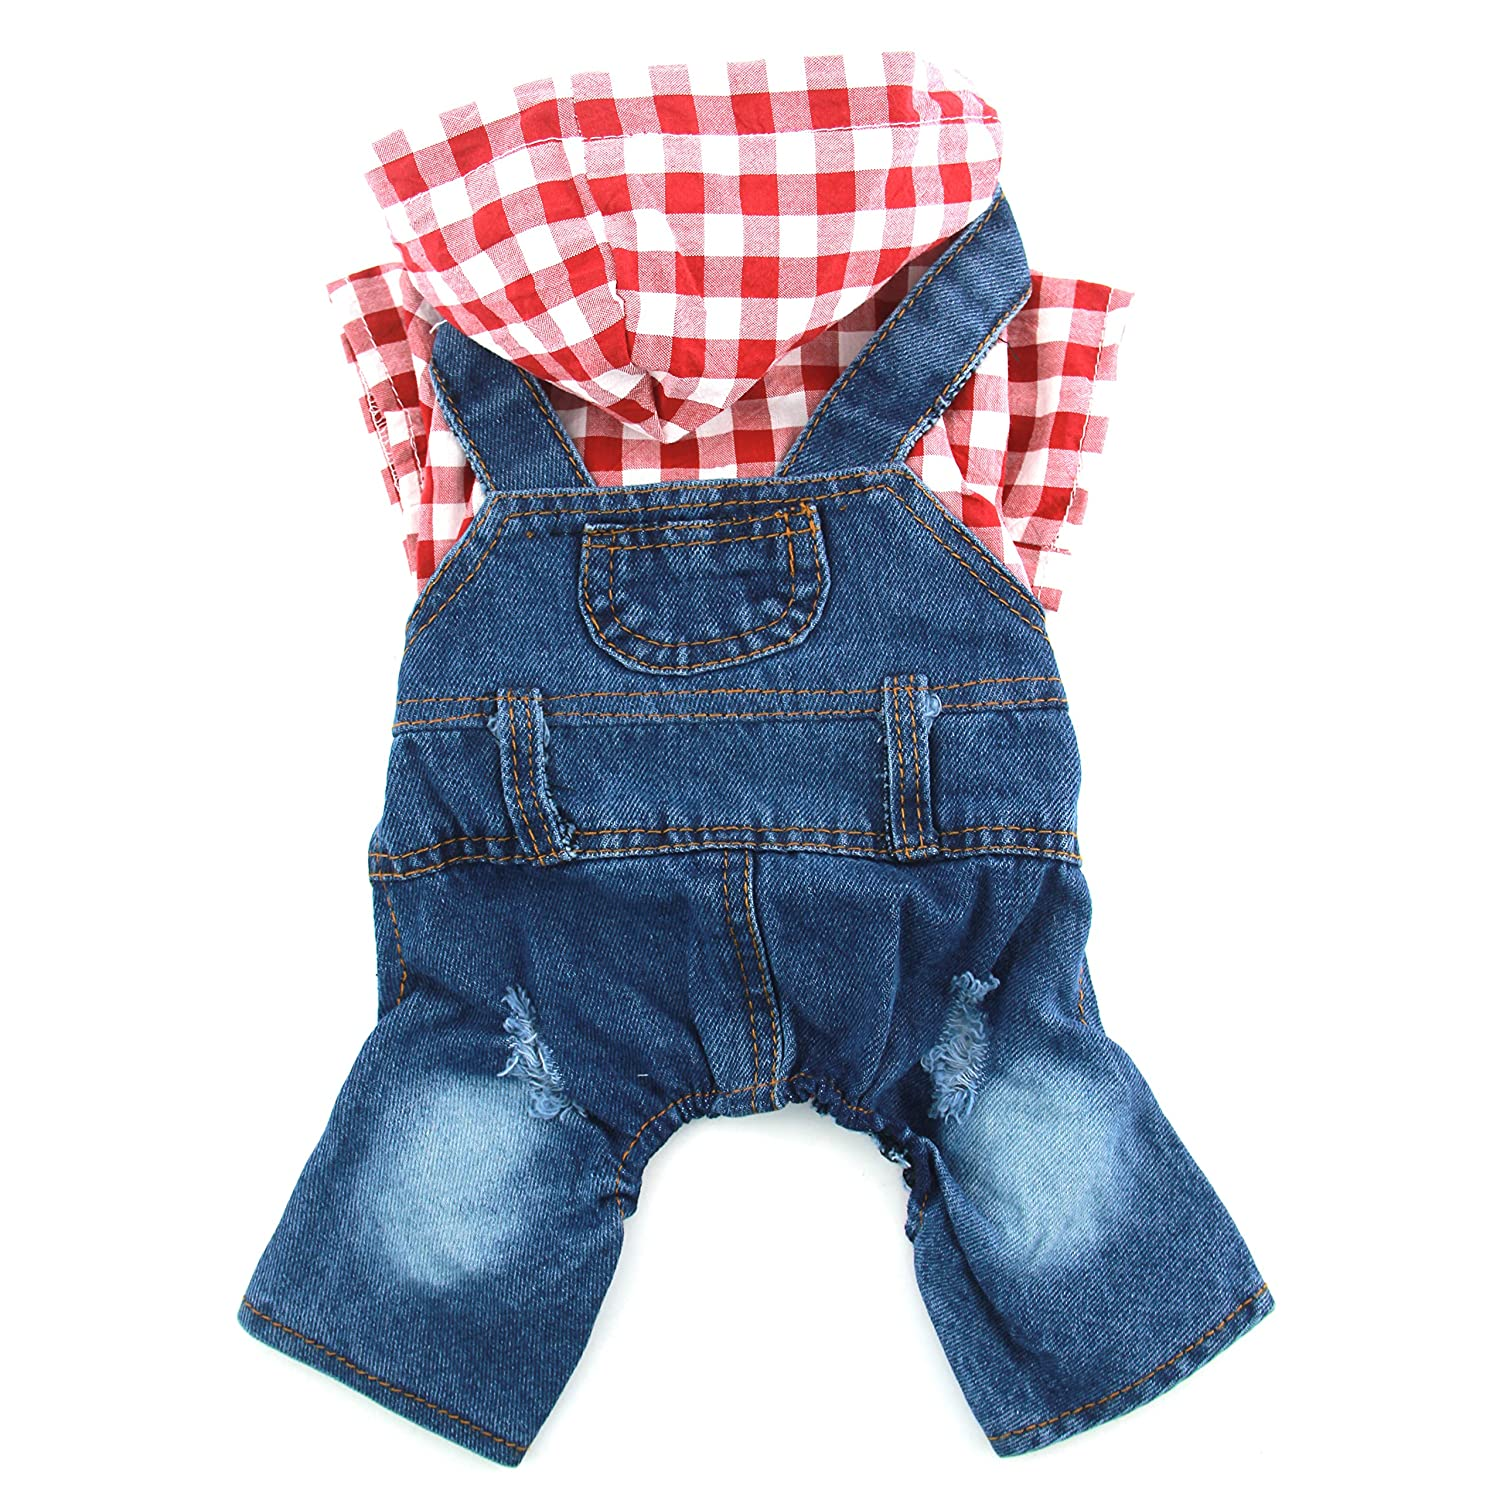 Red L(Back Length 11.81\ Red L(Back Length 11.81\ PETCARE Summer Pet Dogs Plaid Jean Jumpsuit Four Legged Dog Rompers Hoodies 2 colors Casual Style Clothes (L(Back Length 11.81 - Chest 17.72 ), Red)